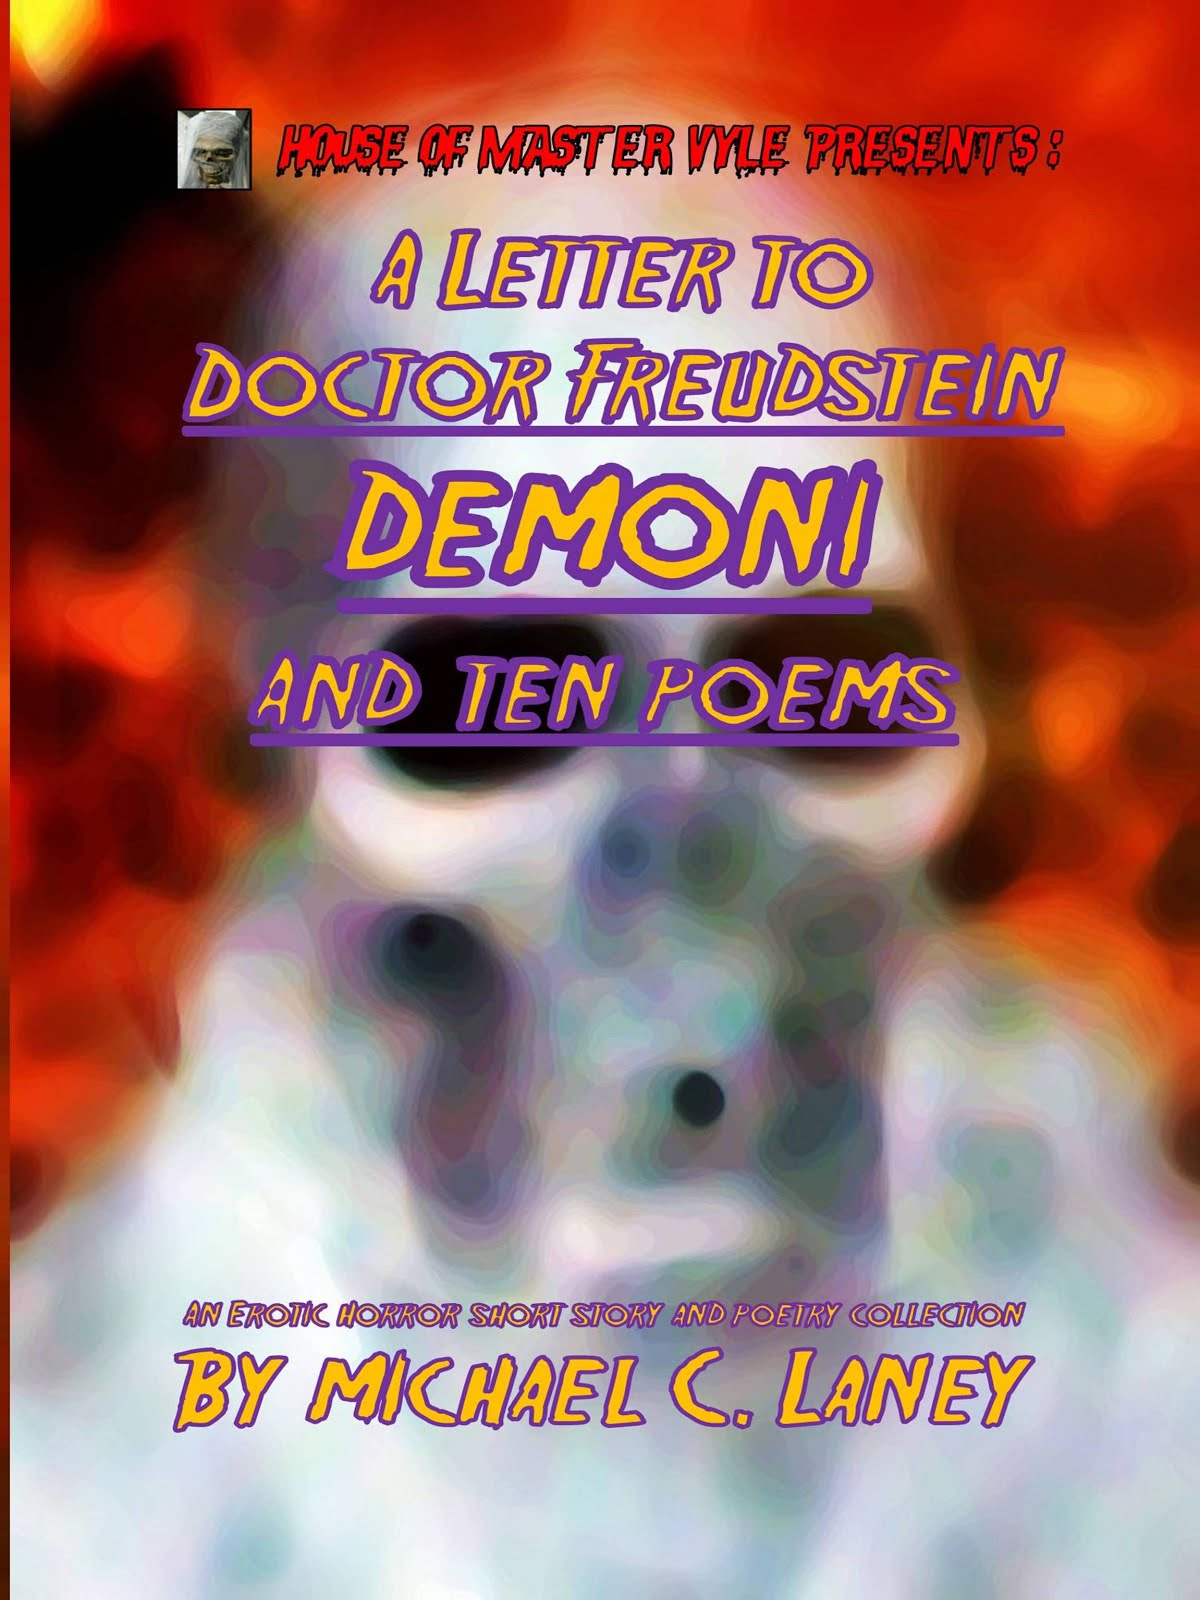 A Letter to Doctor Freudstein - Demoni - And Ten Poems